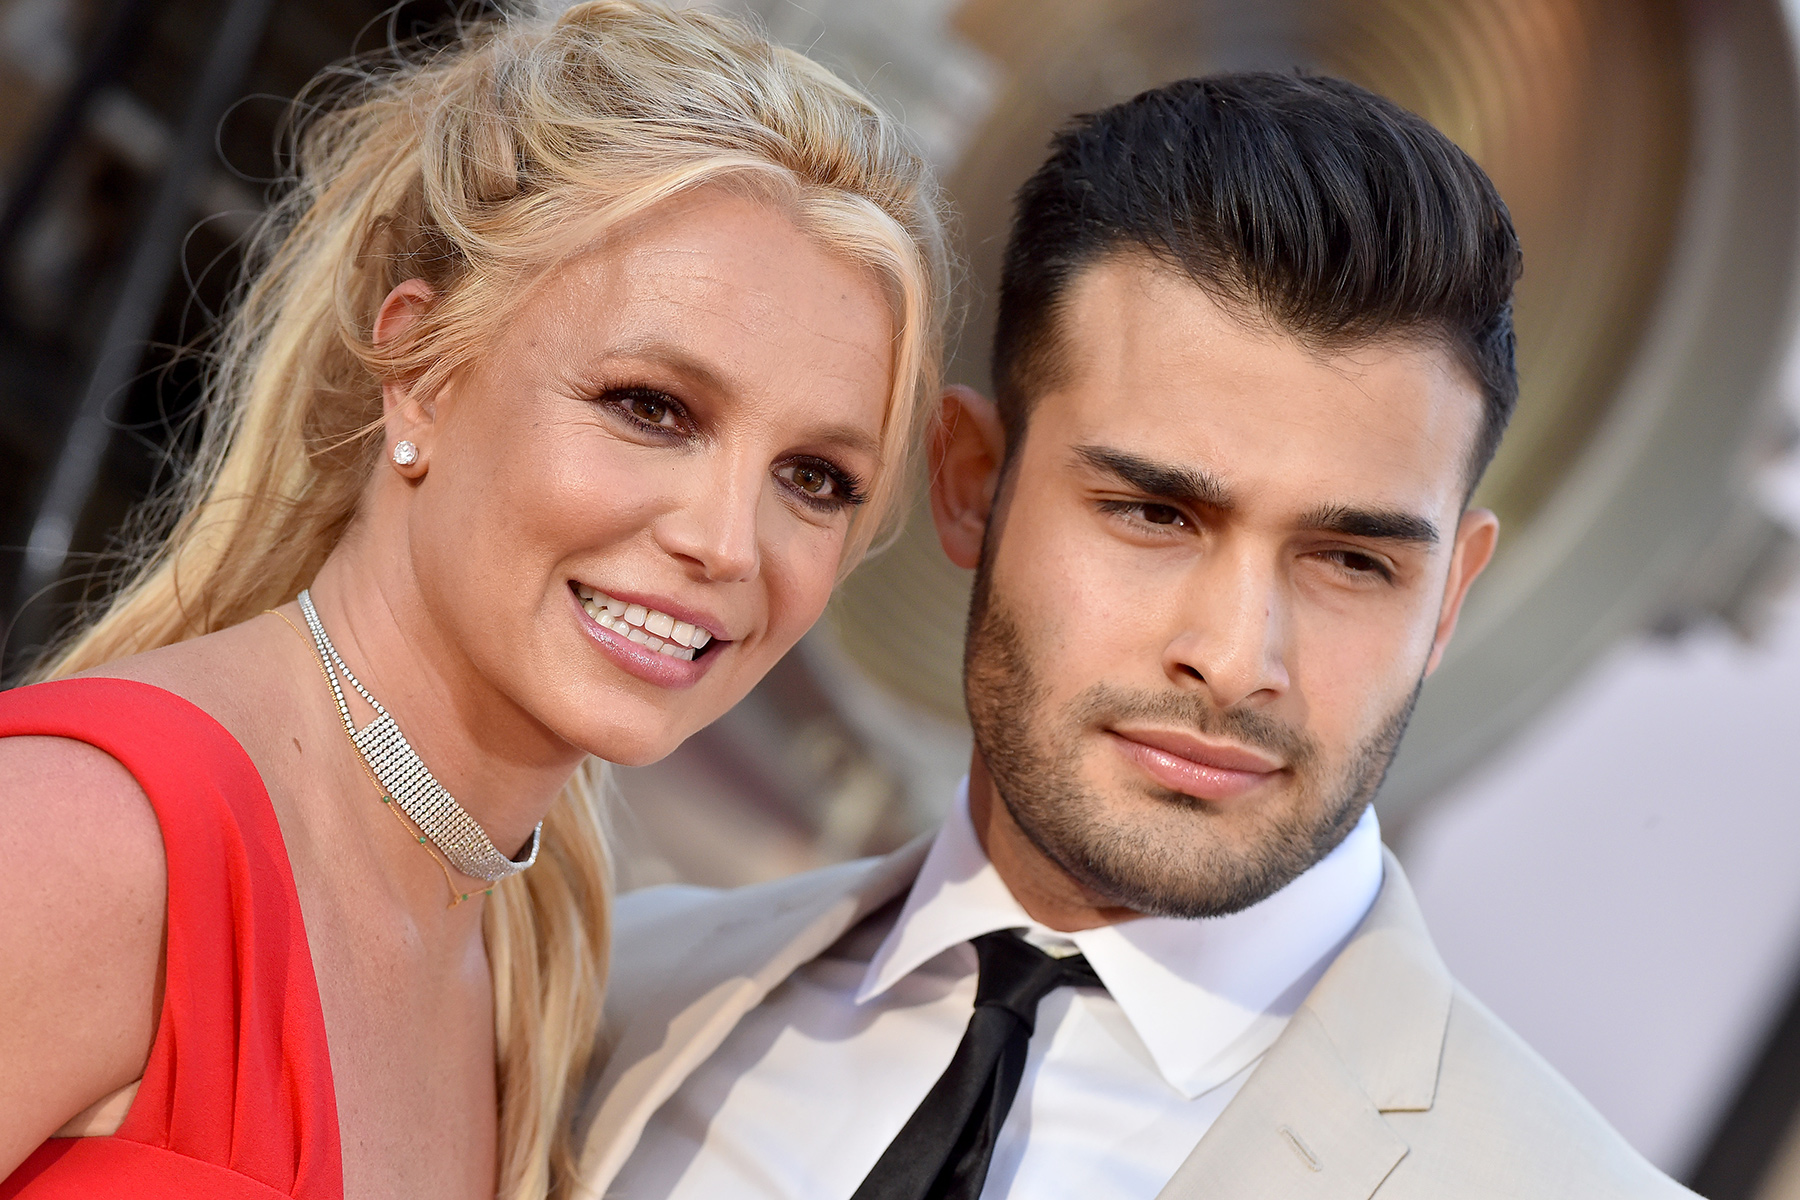 Britney Spears' Boyfriend Calls Singer's Dad a 'Total Dick' - Rolling Stone